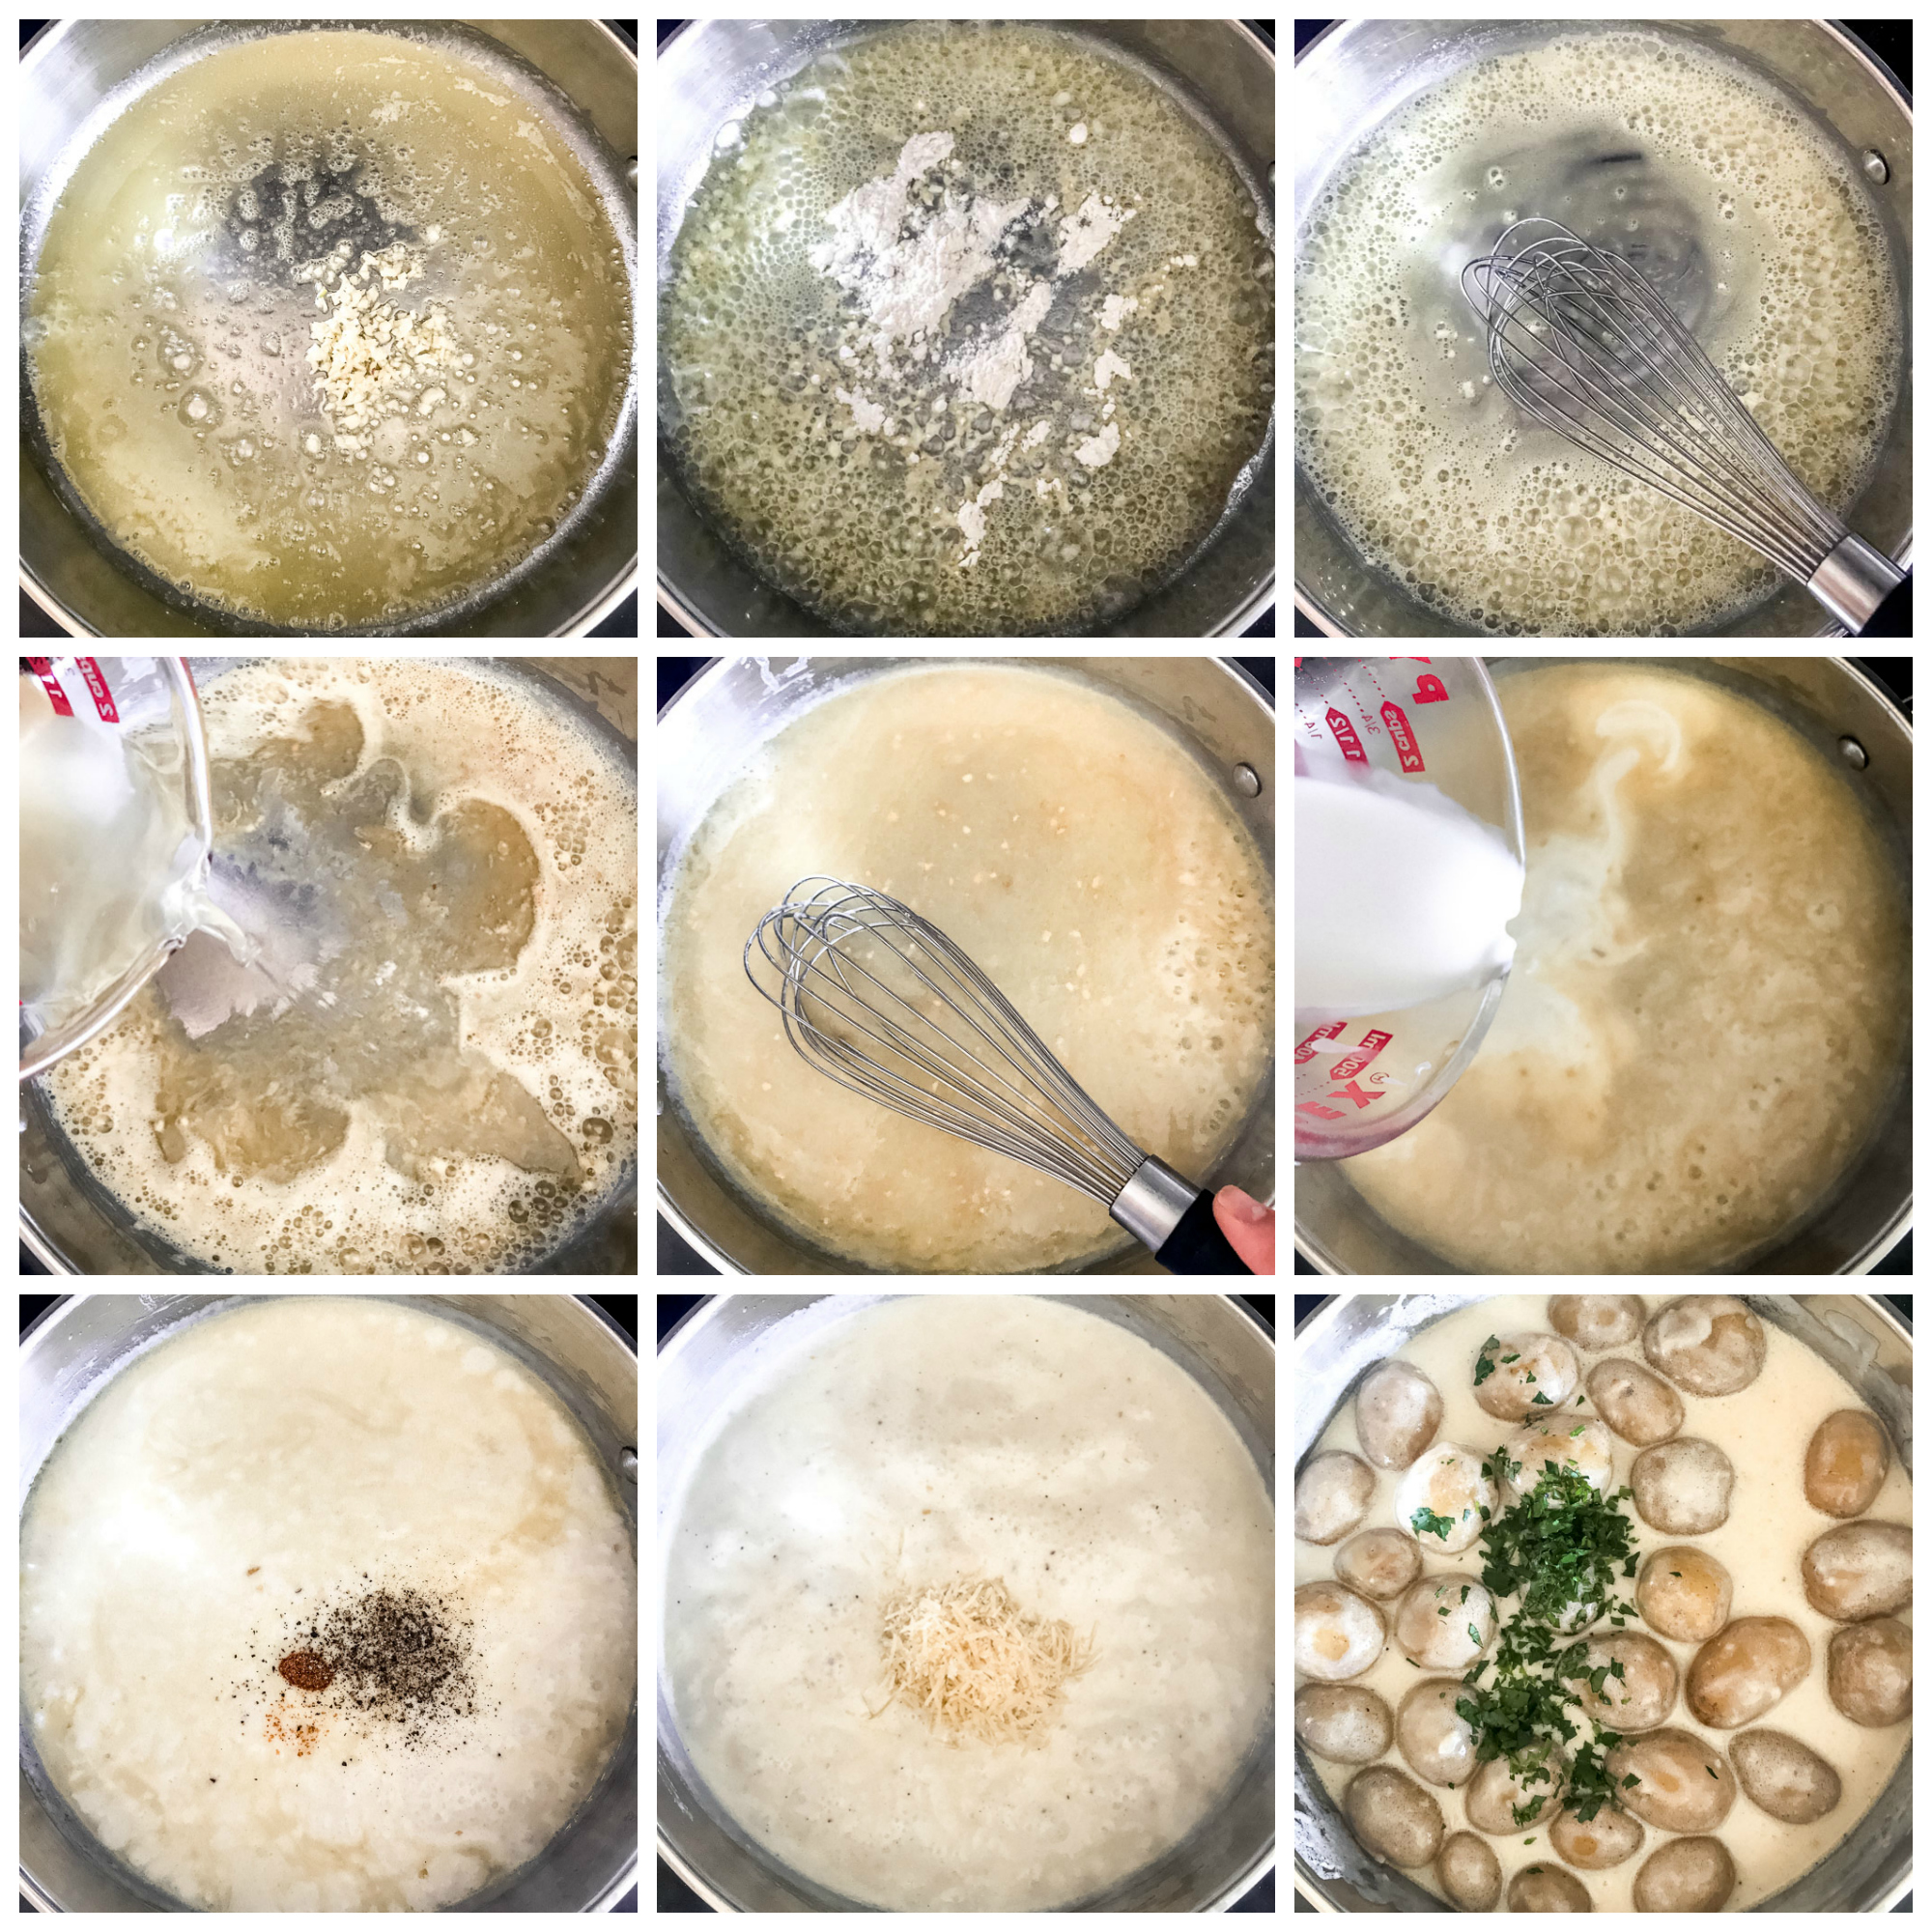 Step by step instruction on how to make garlic parmesan cream sauce with potatoes